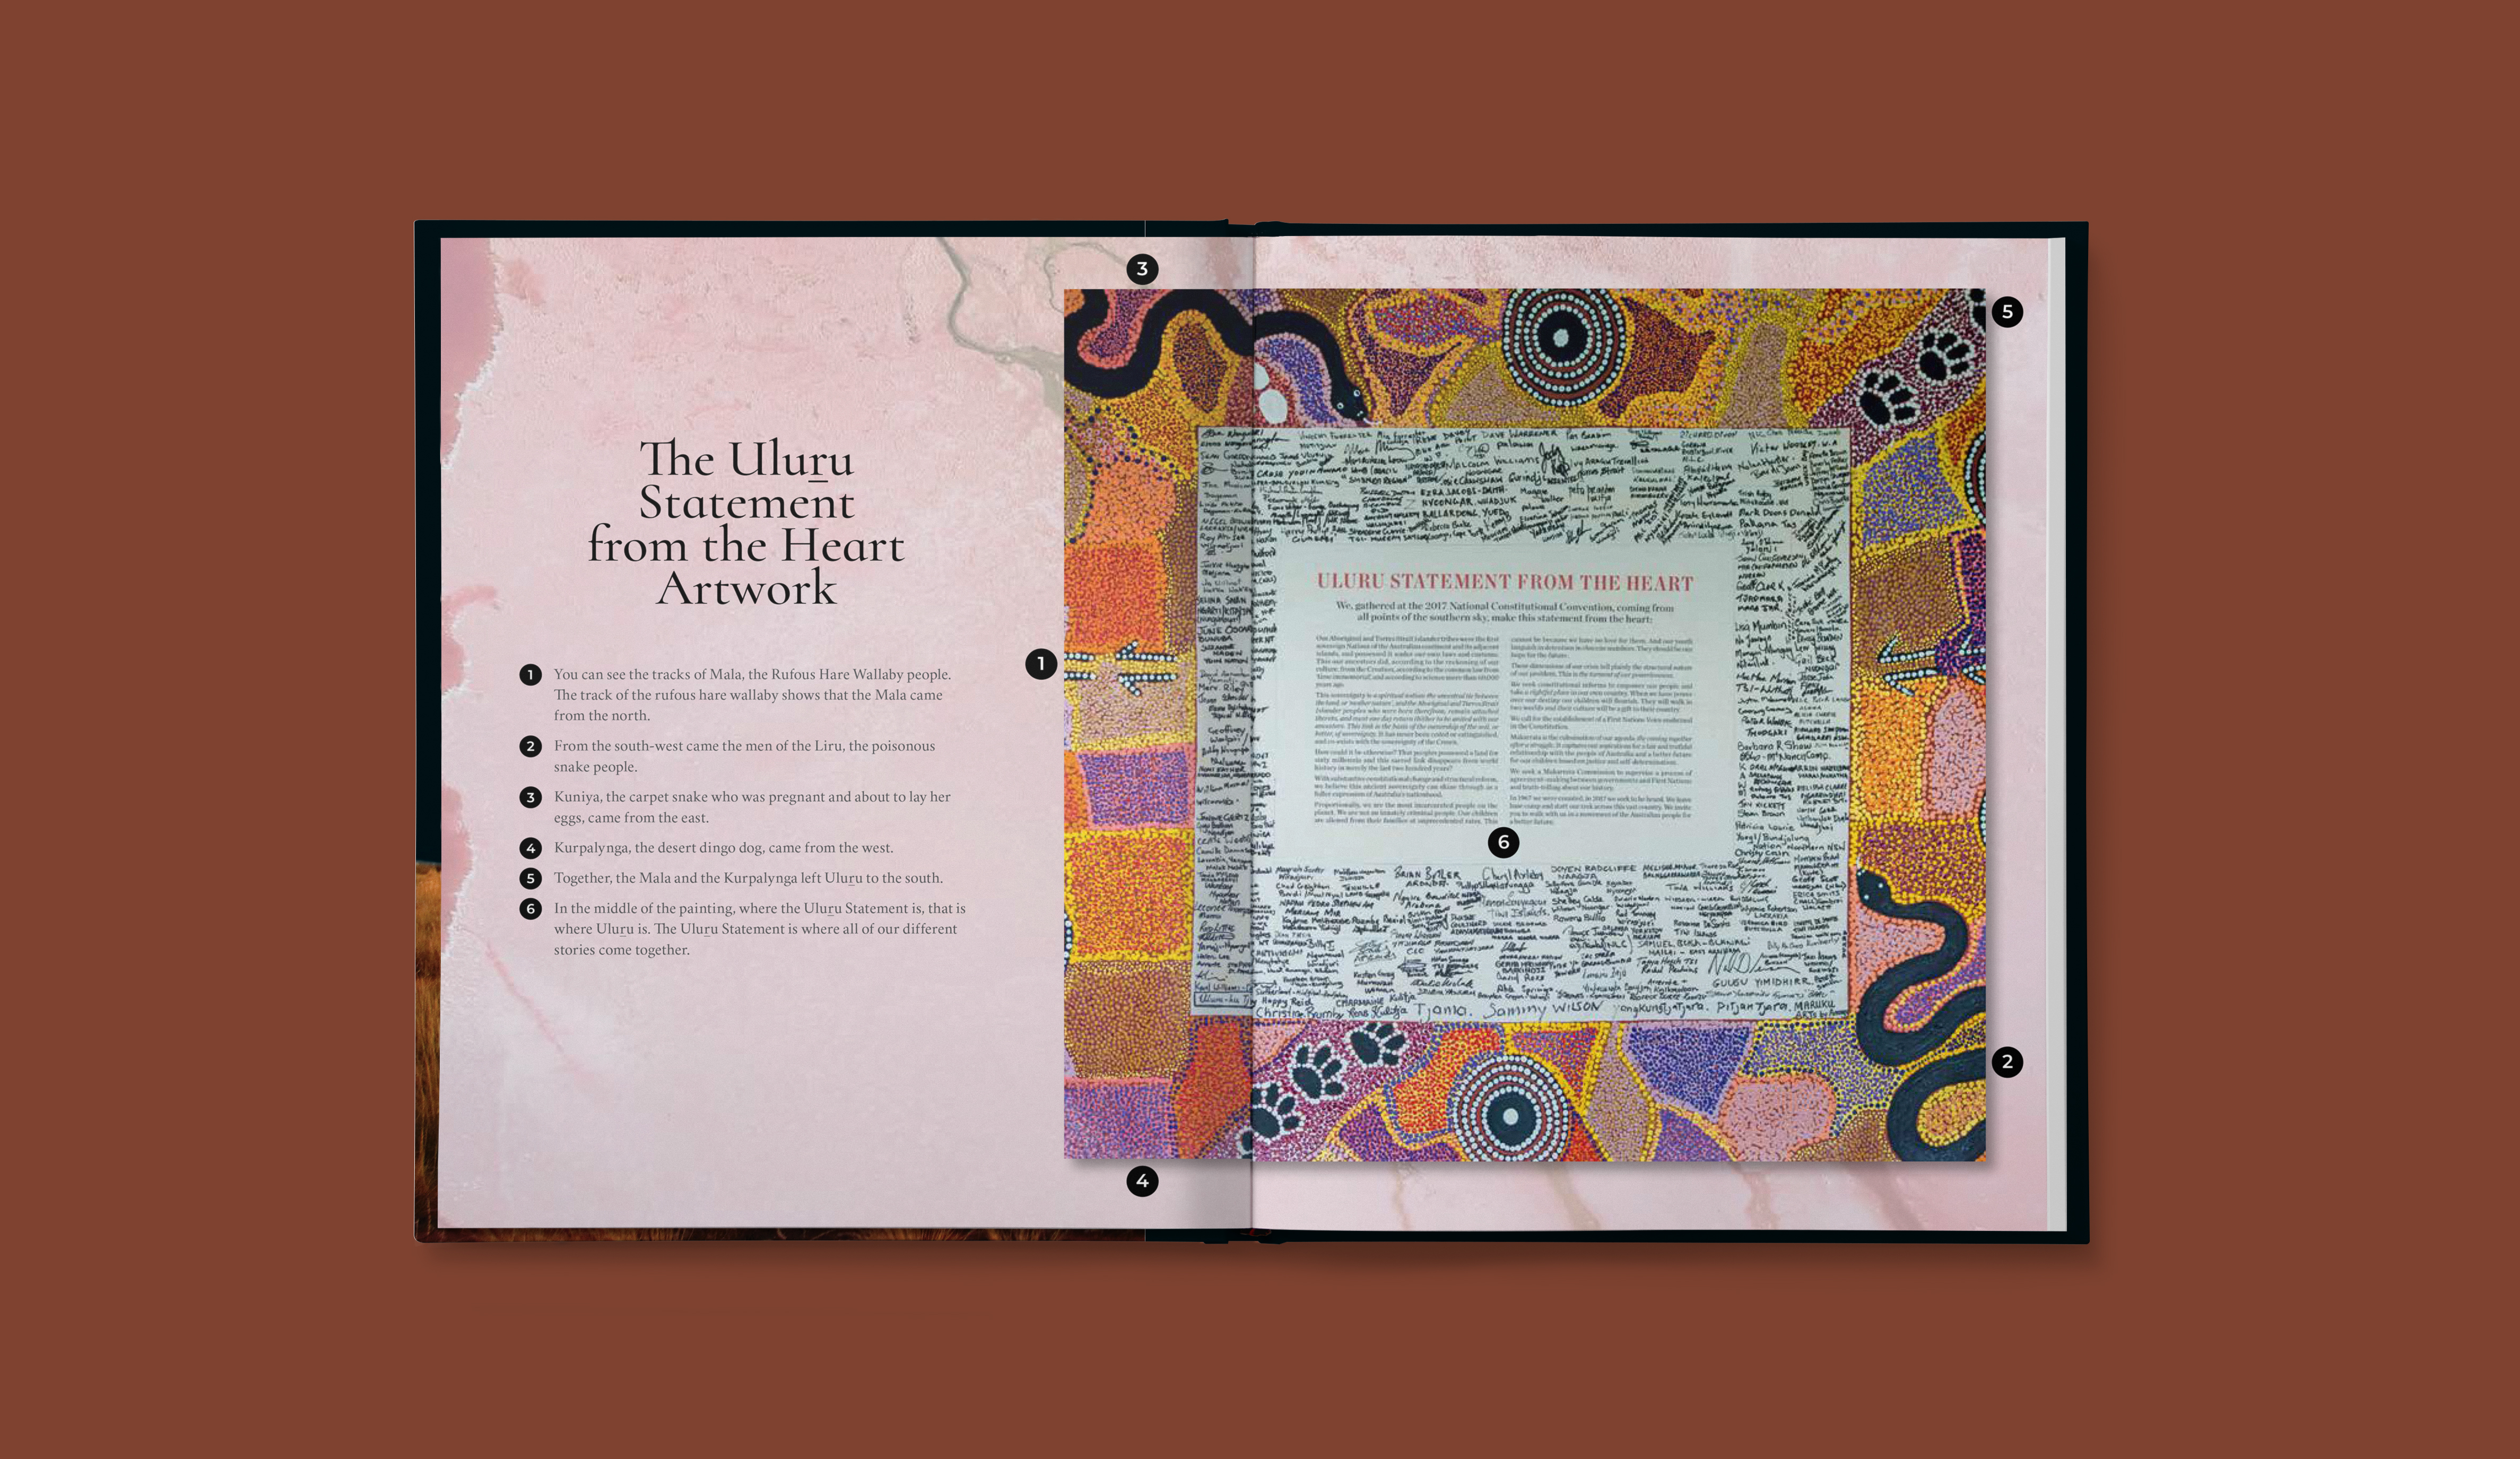 Finding the heart uluru statement